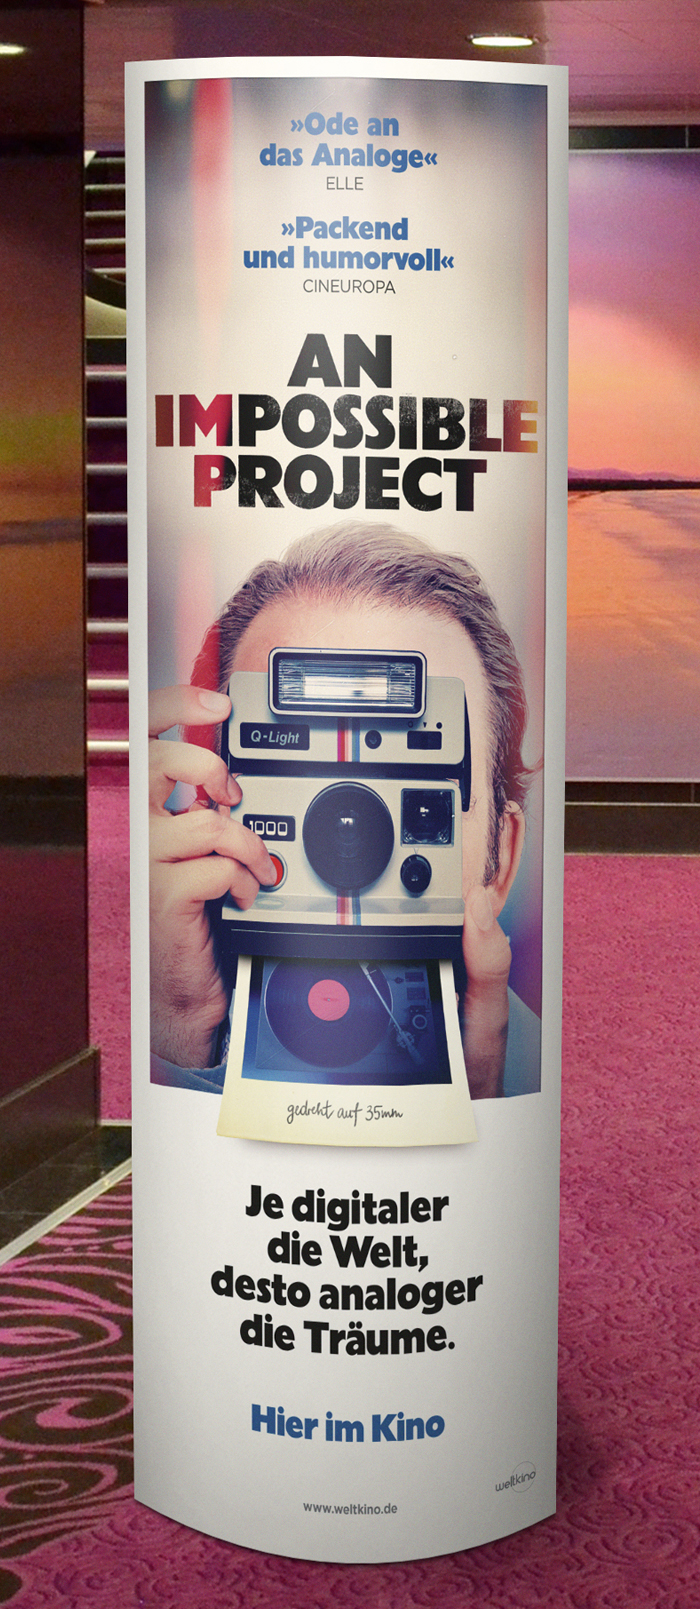 An Impossible Project Affaire Populaire Weltkino Film Movie Plakat Poster Grafik Design Berlin